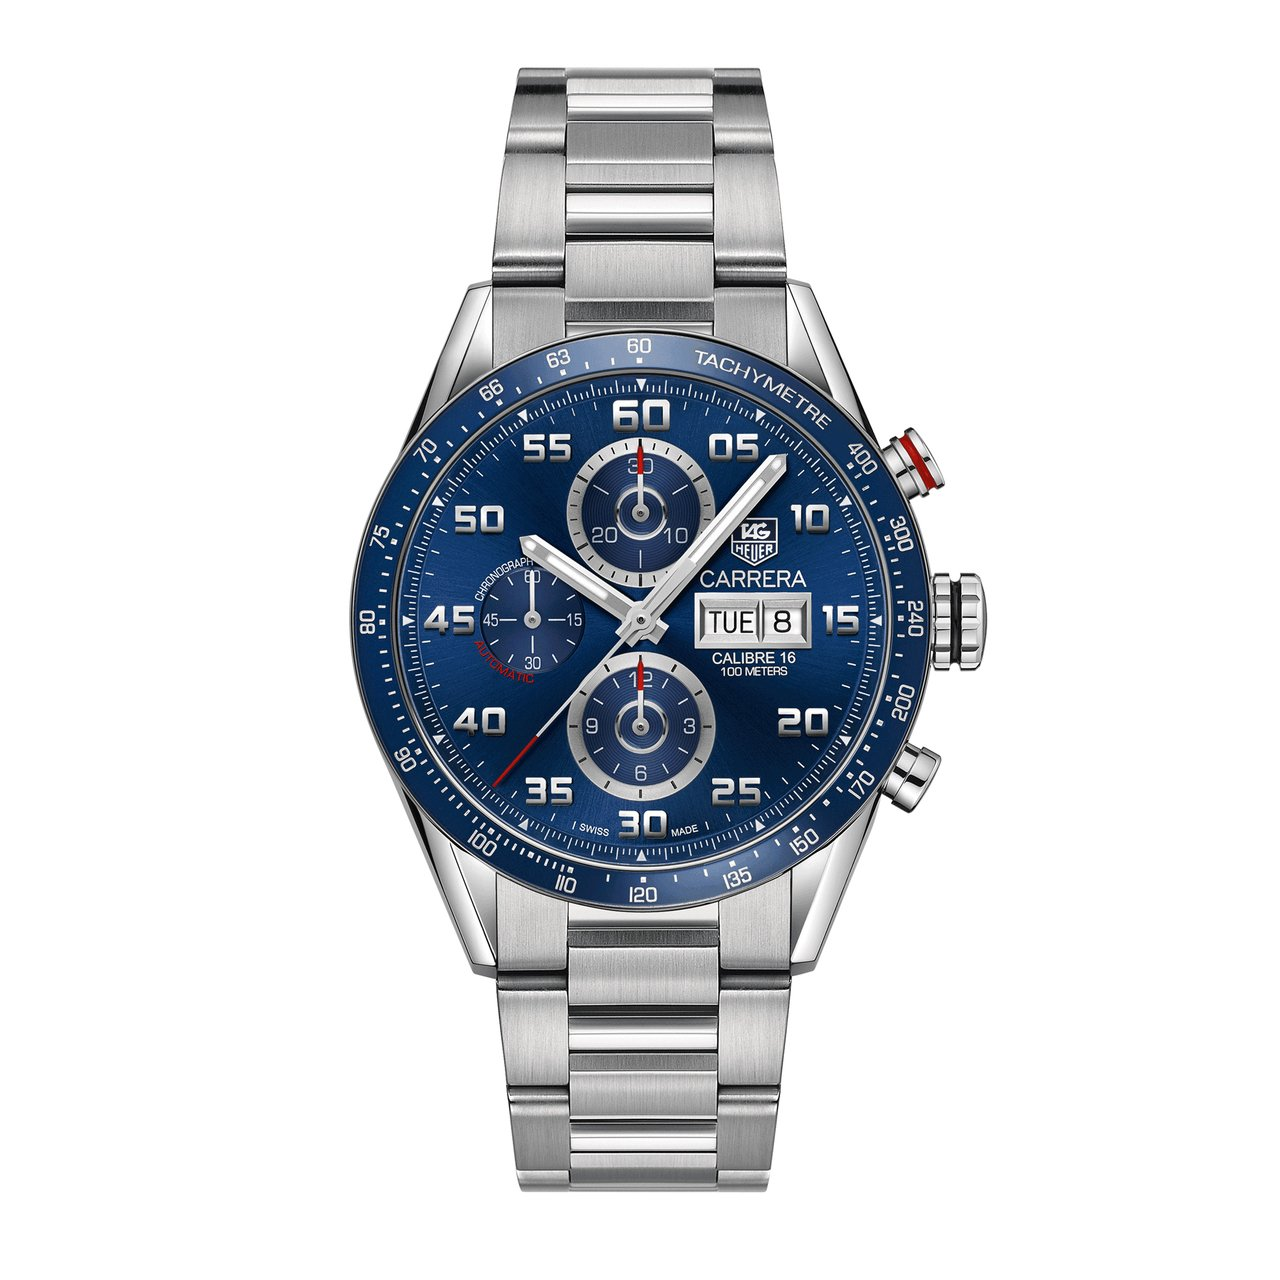 TAG Heuer Men's Carrera Automatic Chronograph Calibre 16 Blue Dial Watch